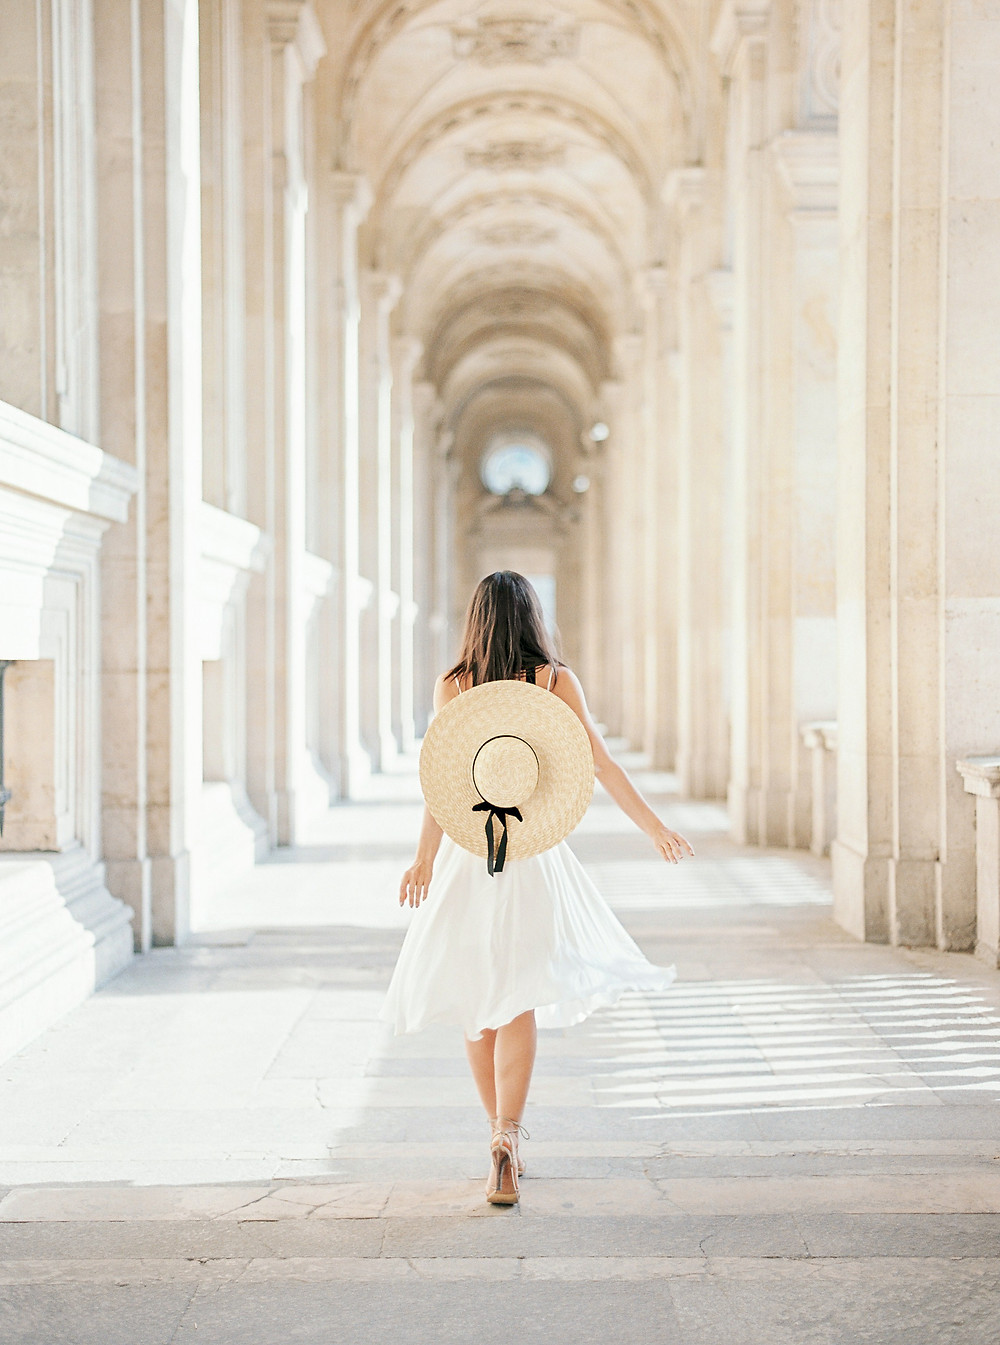 Girl with Mango hat in gallery of Louvre and total white outfit idea